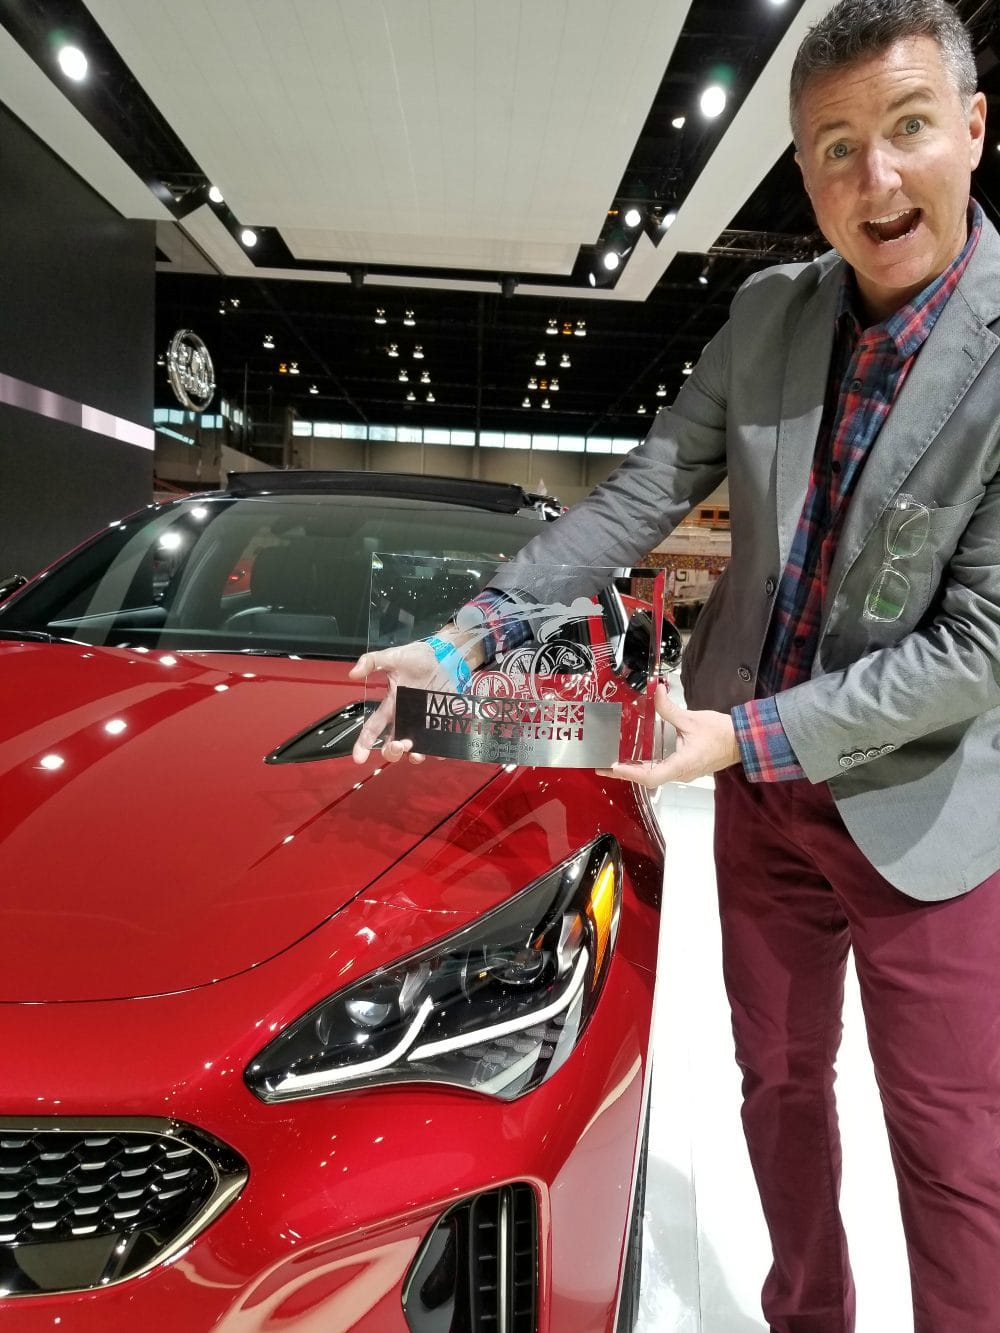 Kia at the Chicago Auto Show: A Story of Quality #KiaAutoShow #KiaFamily #KiaPartner